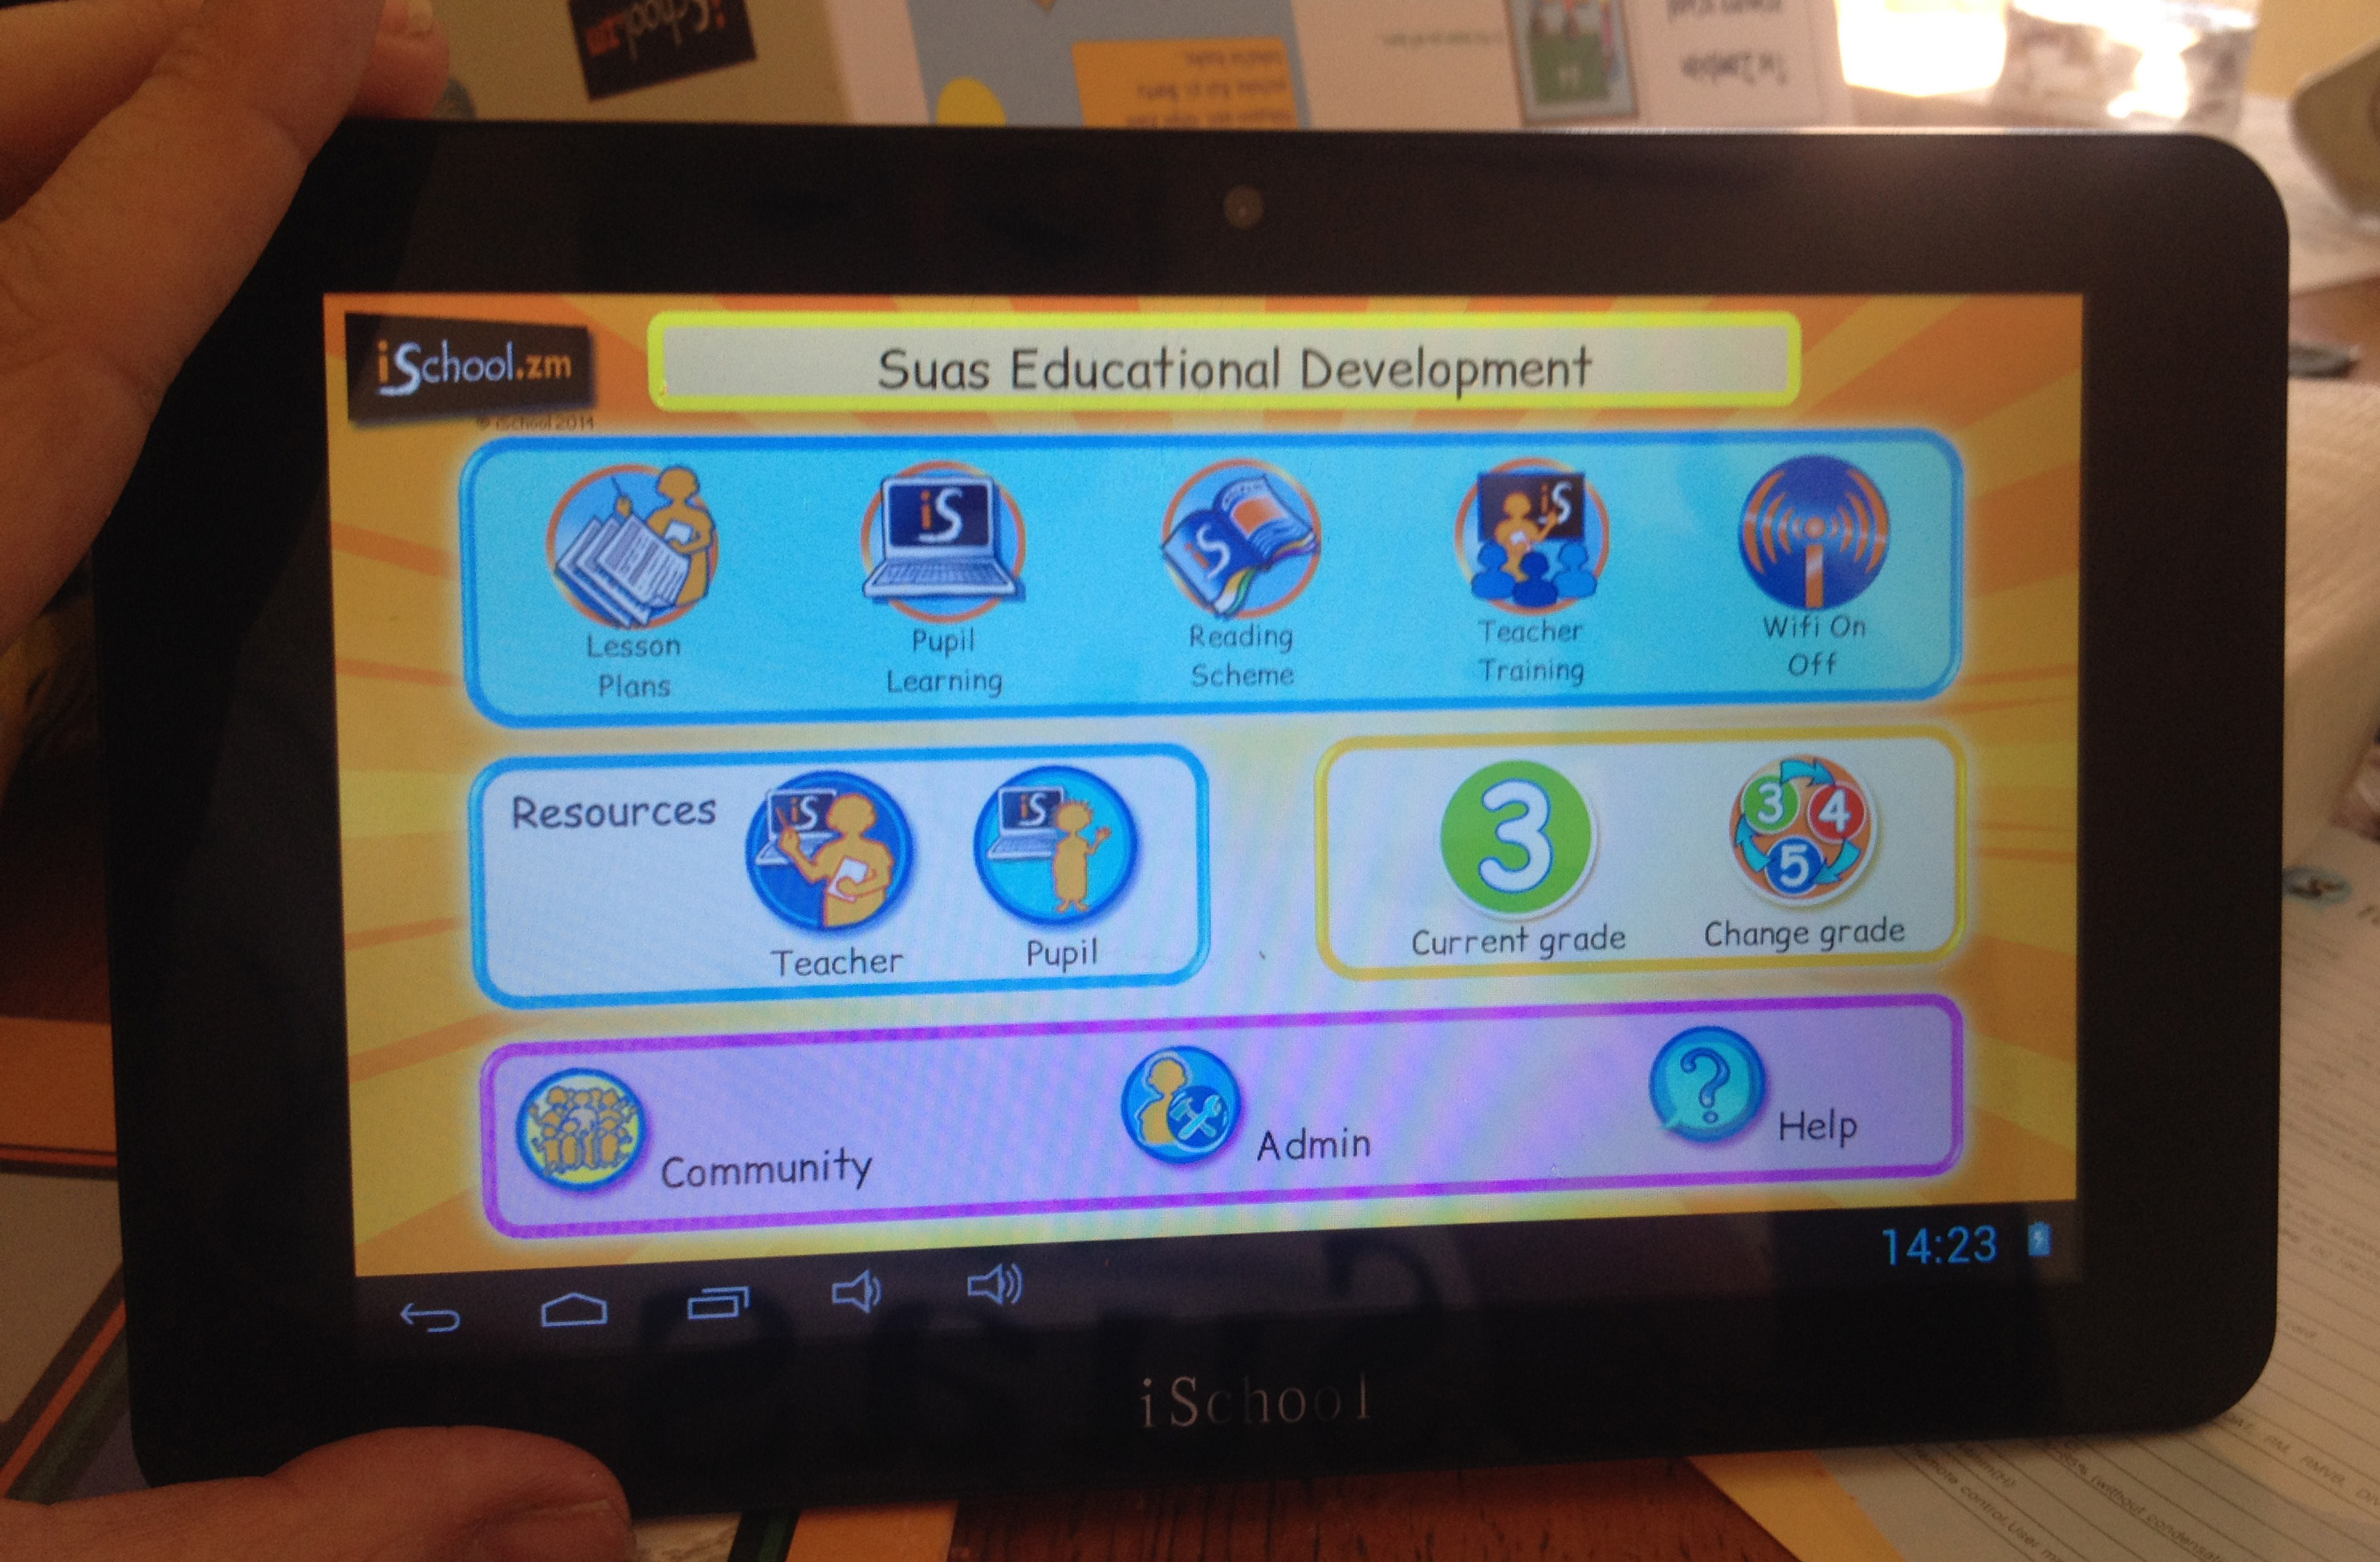 Interface of student learning tablet